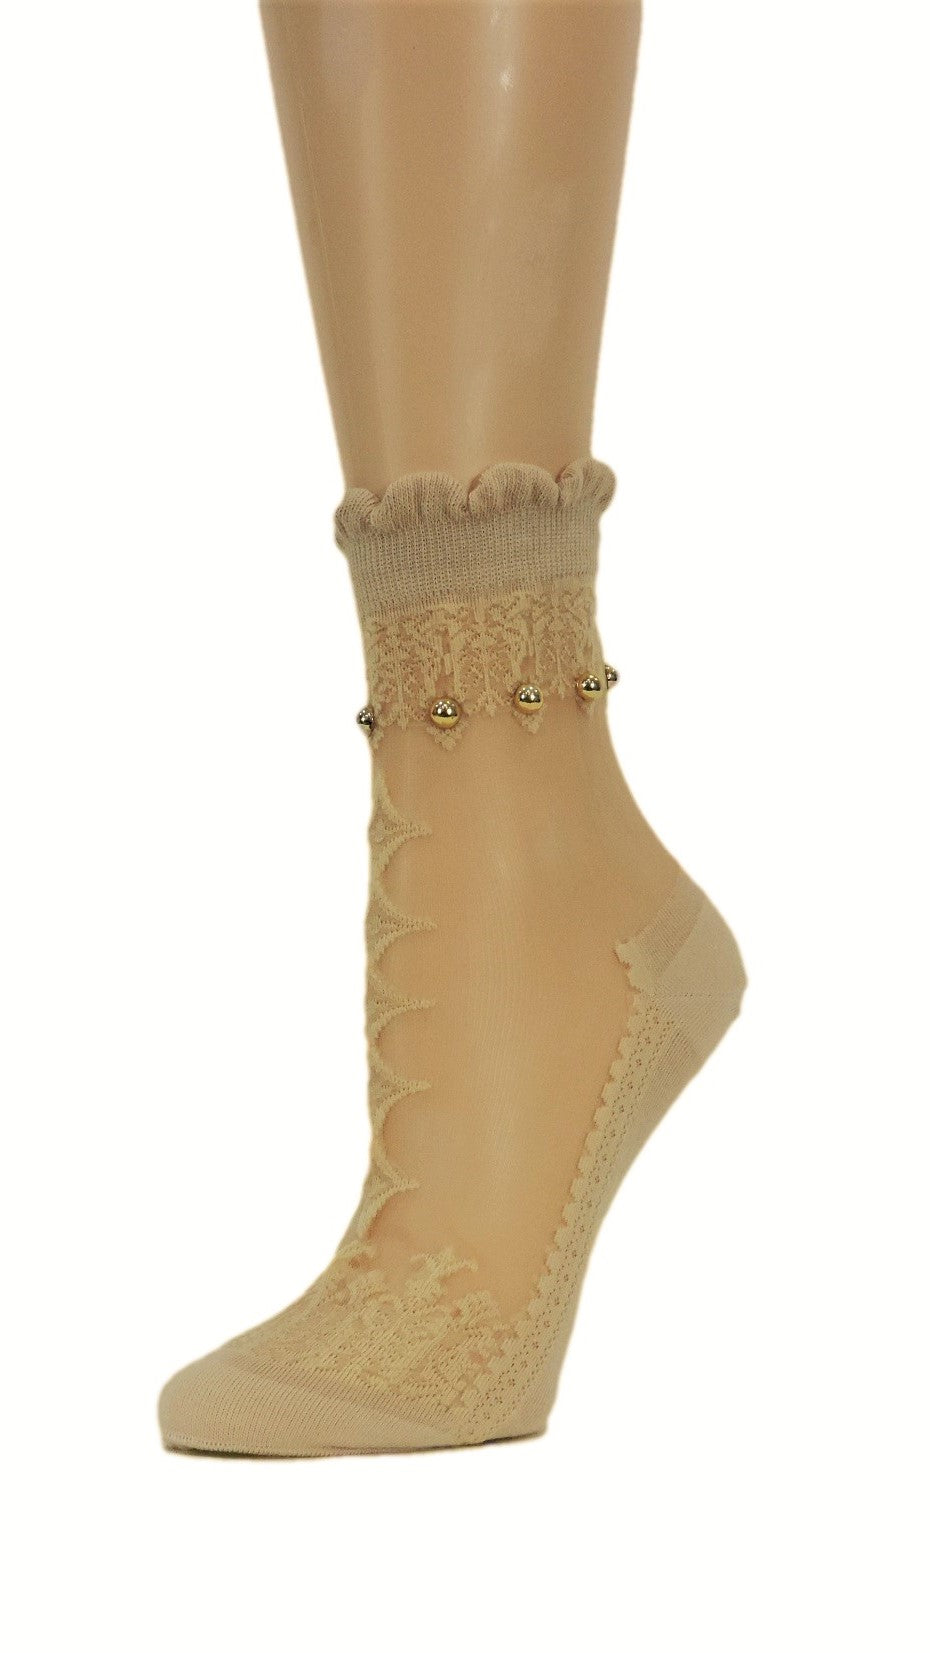 Elegant Beige Custom Sheer Socks with beads - Global Trendz Fashion®